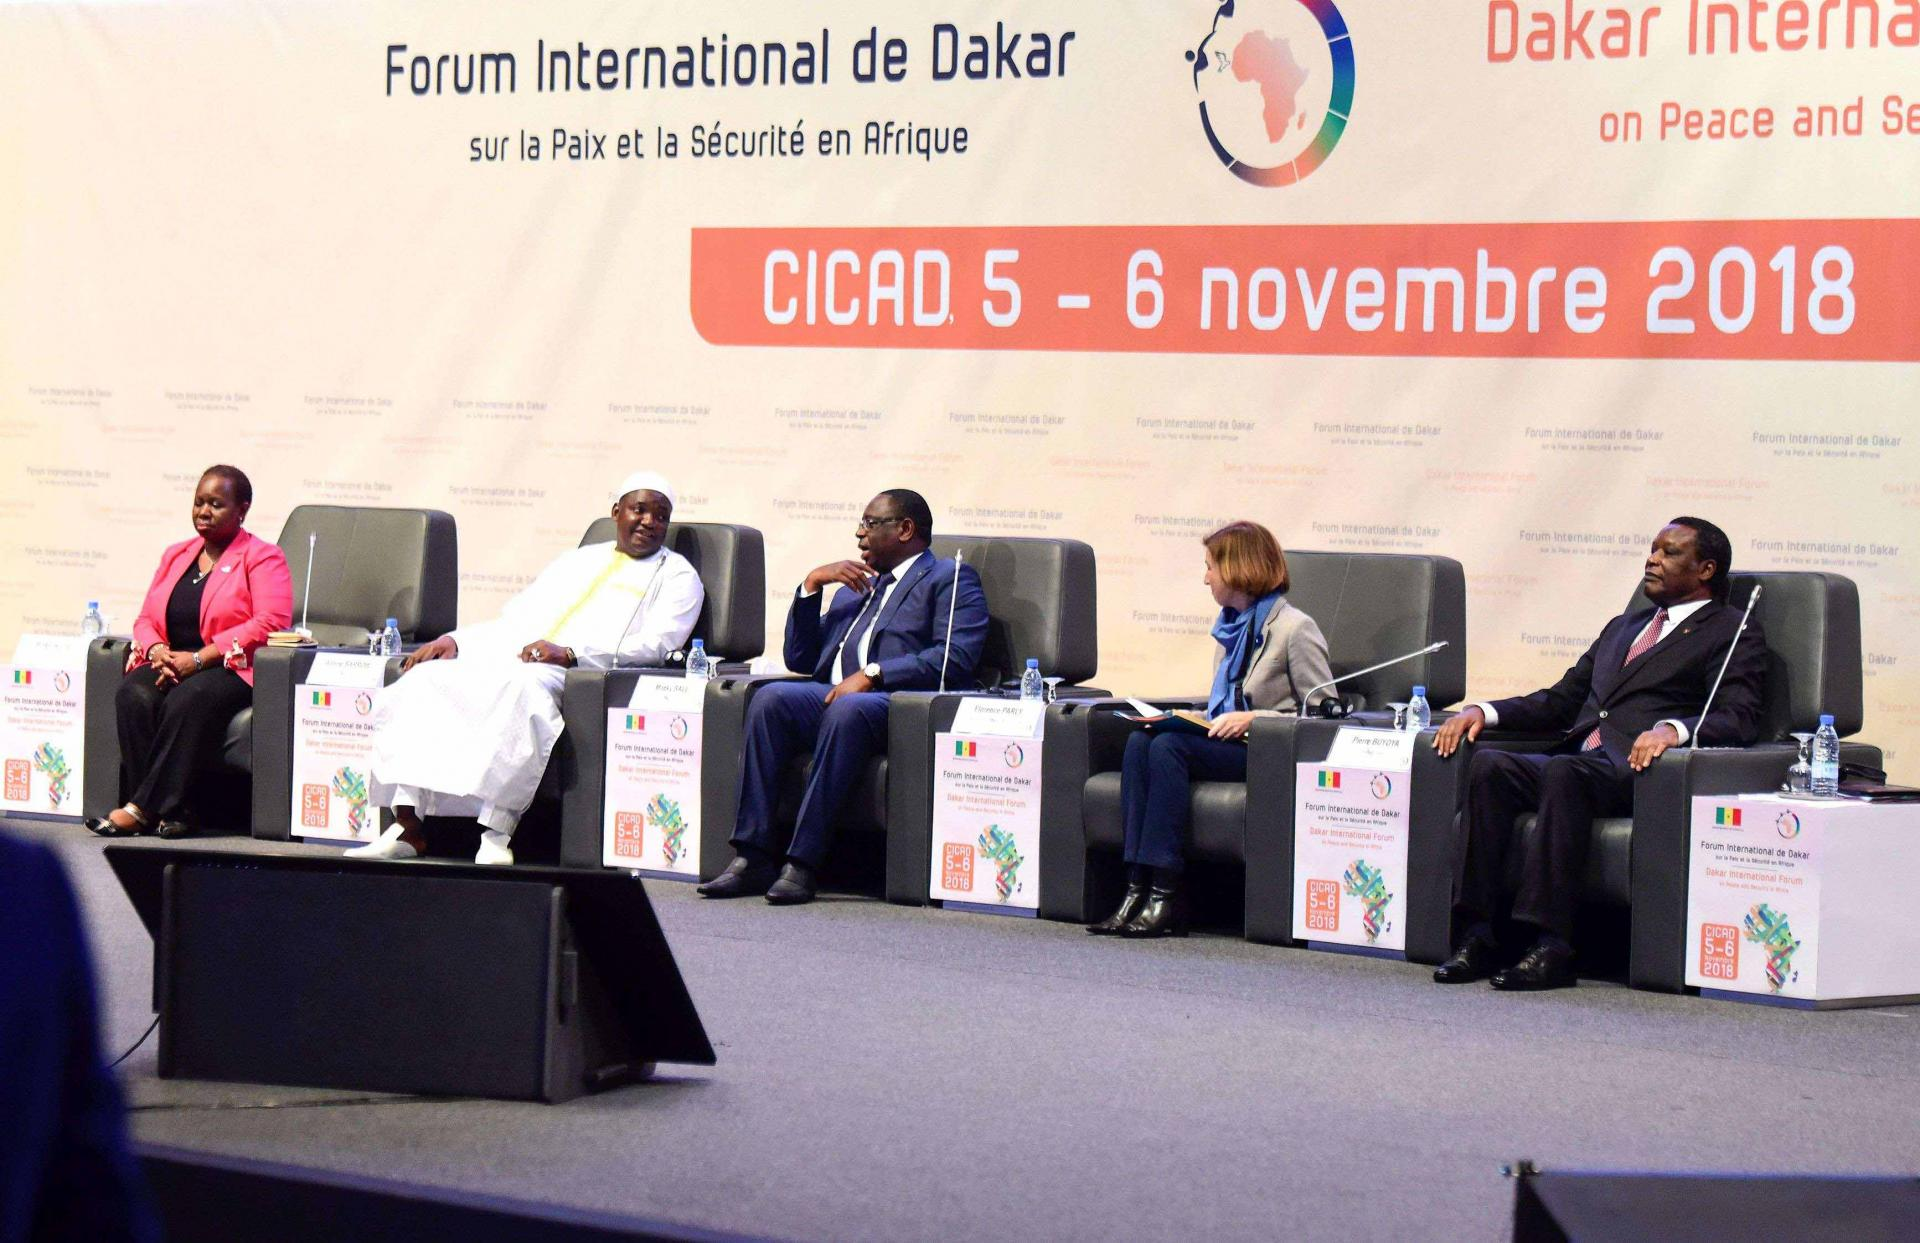 The Dakar International Forum on Peace and Security, launched in 2013, is a French-supported initiative gathering several hundred political leaders